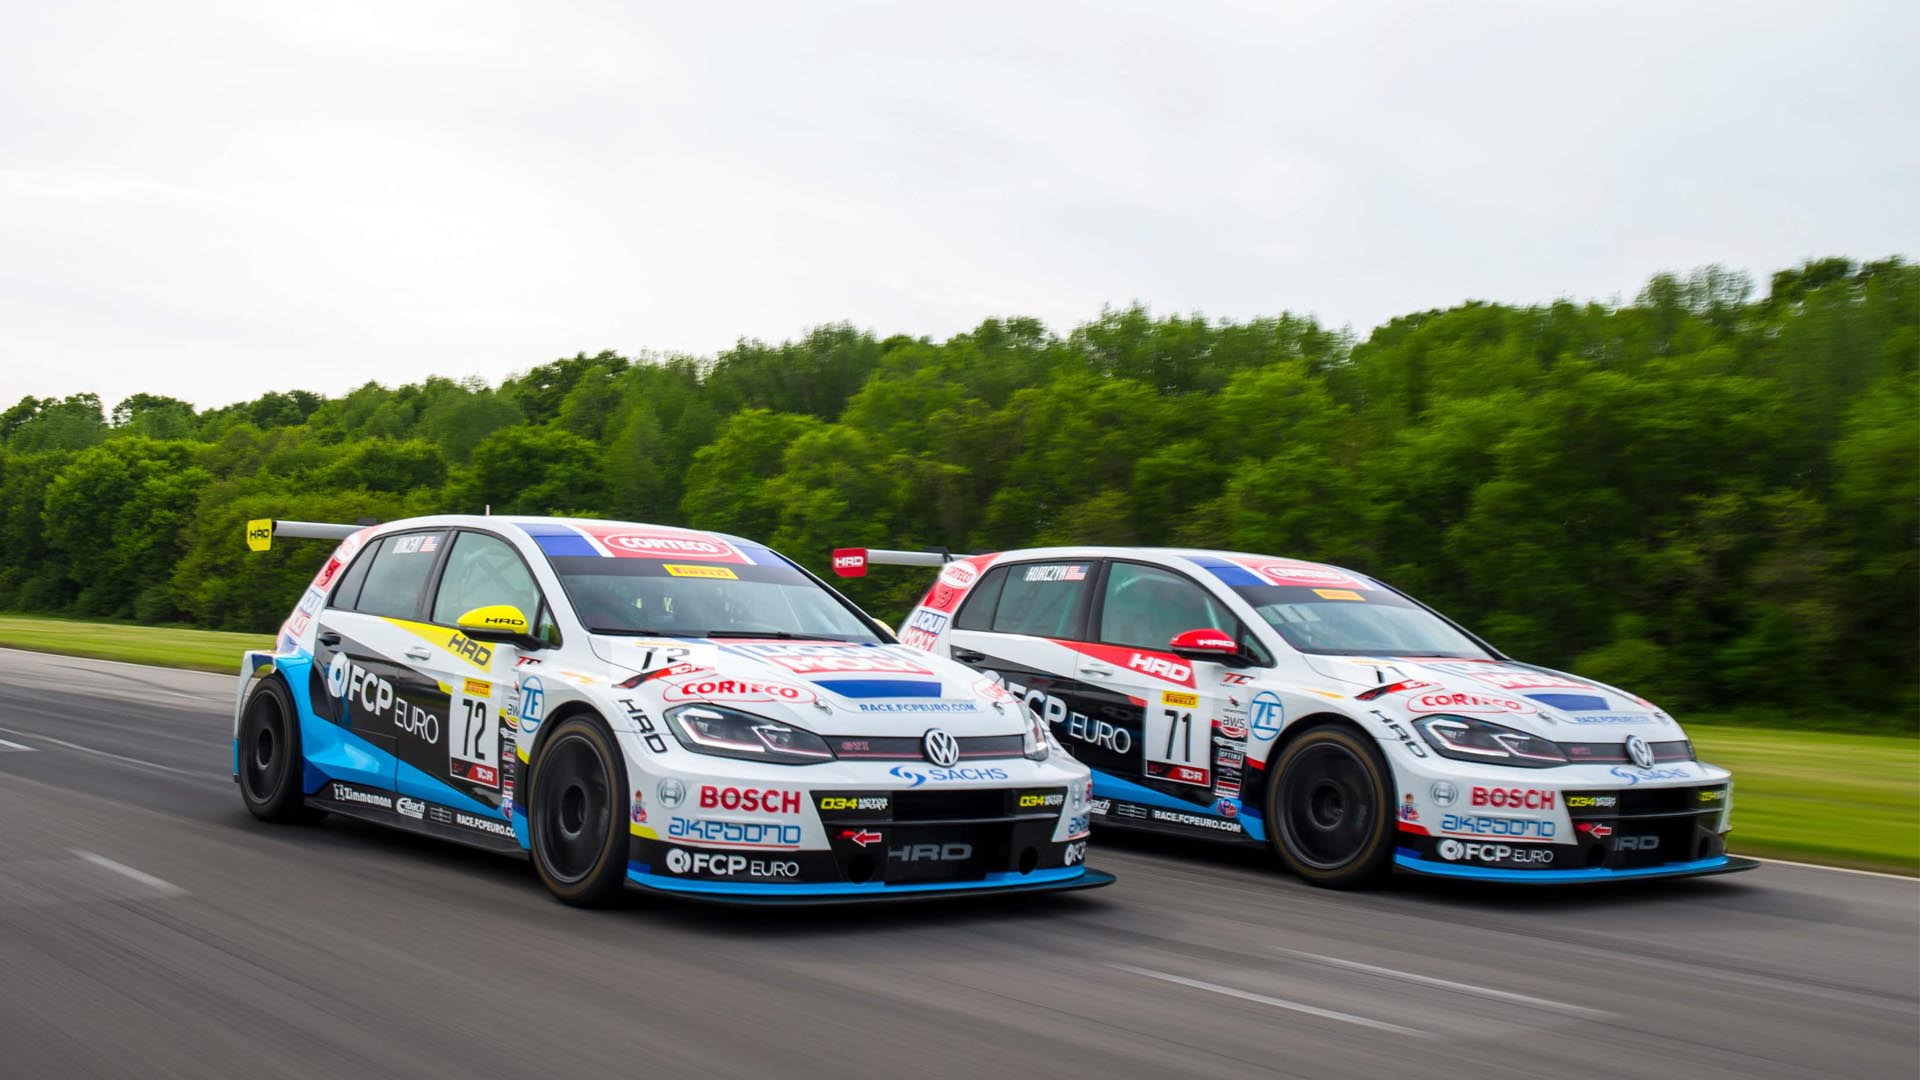 For Sale: Two Championship-Winning VW GTI TCRs